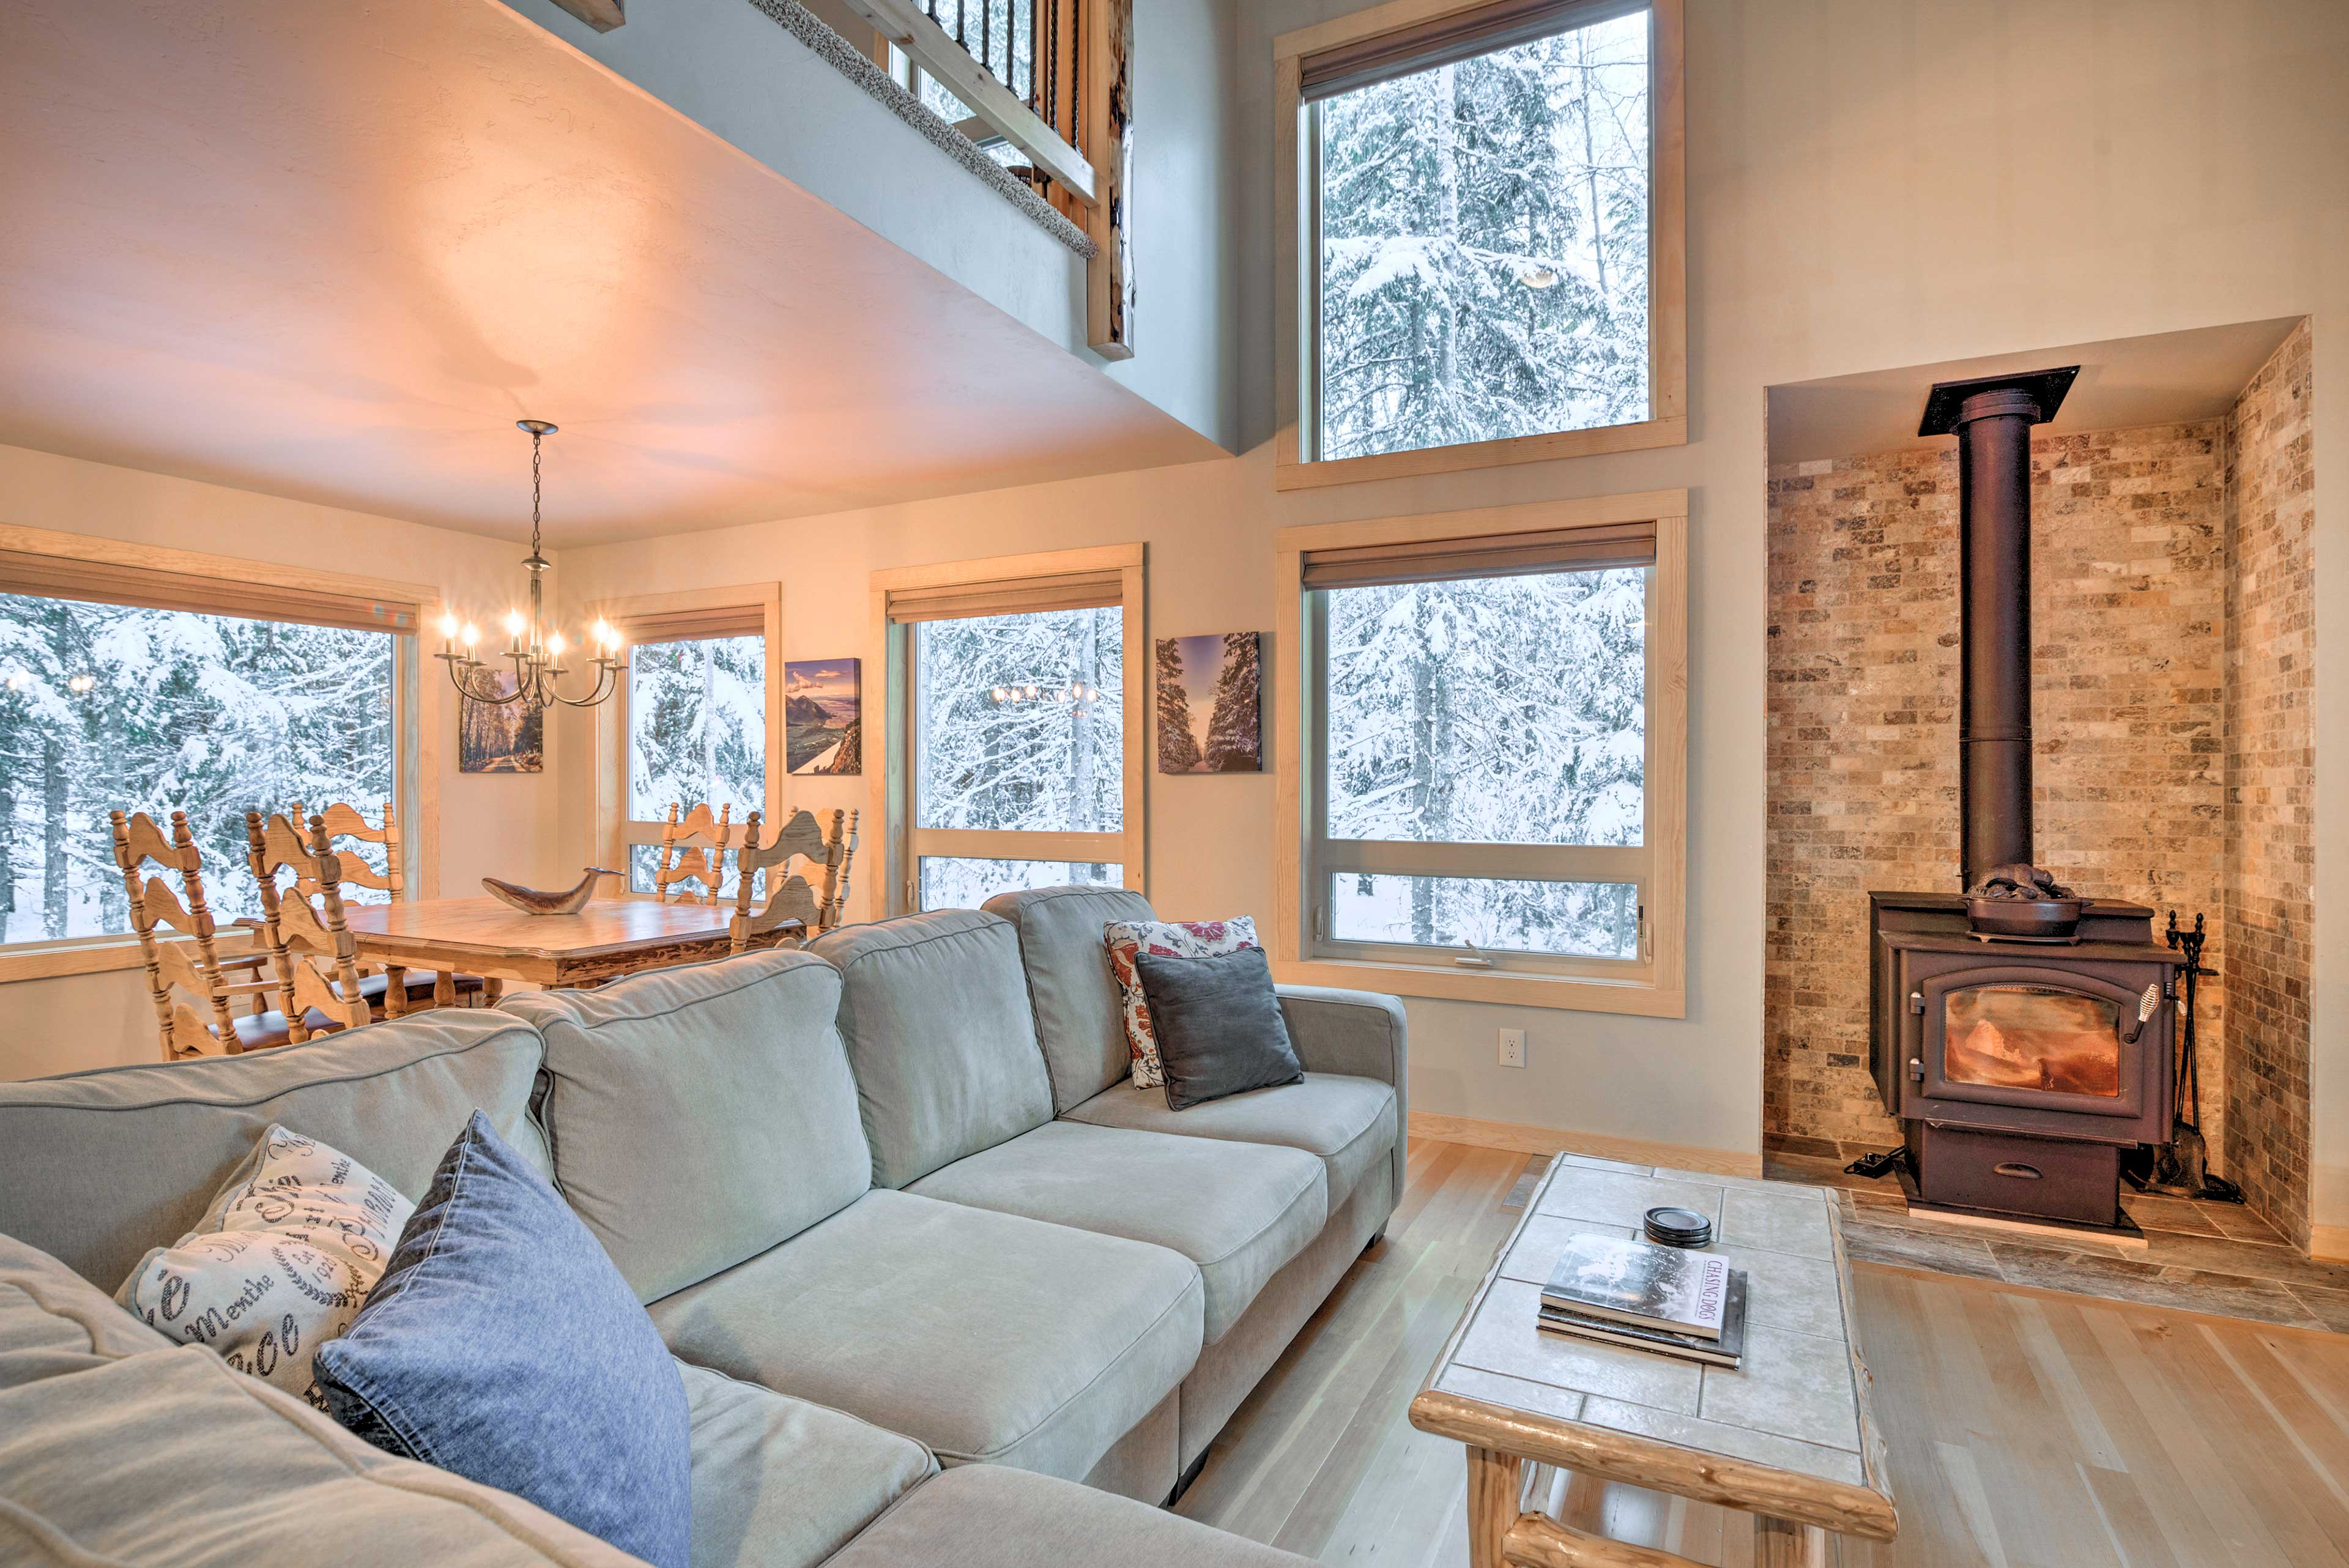 Windows let the outdoors in, showing off the spruce, hemlock and birch trees.